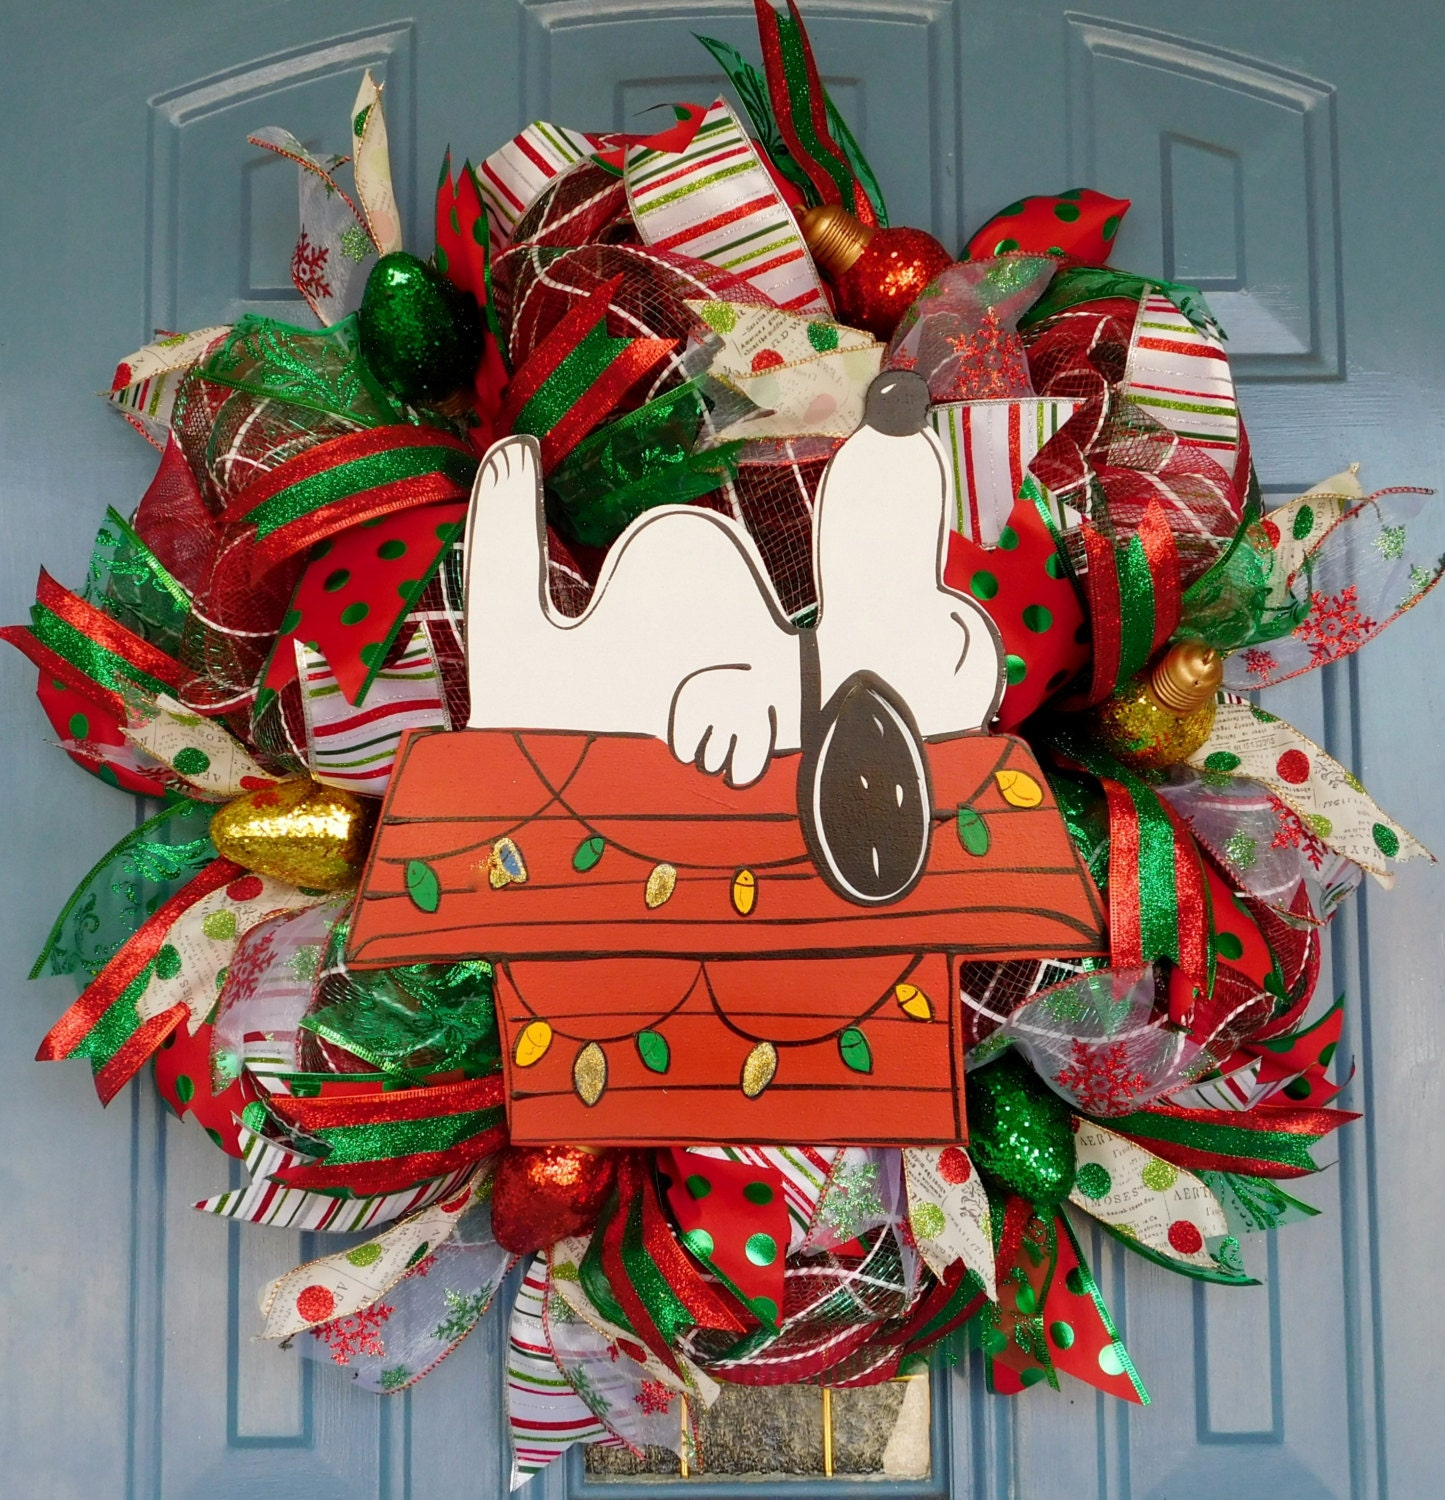 Snoopy On His Doghouse With Christmas Lights Deco Mesh Wreath